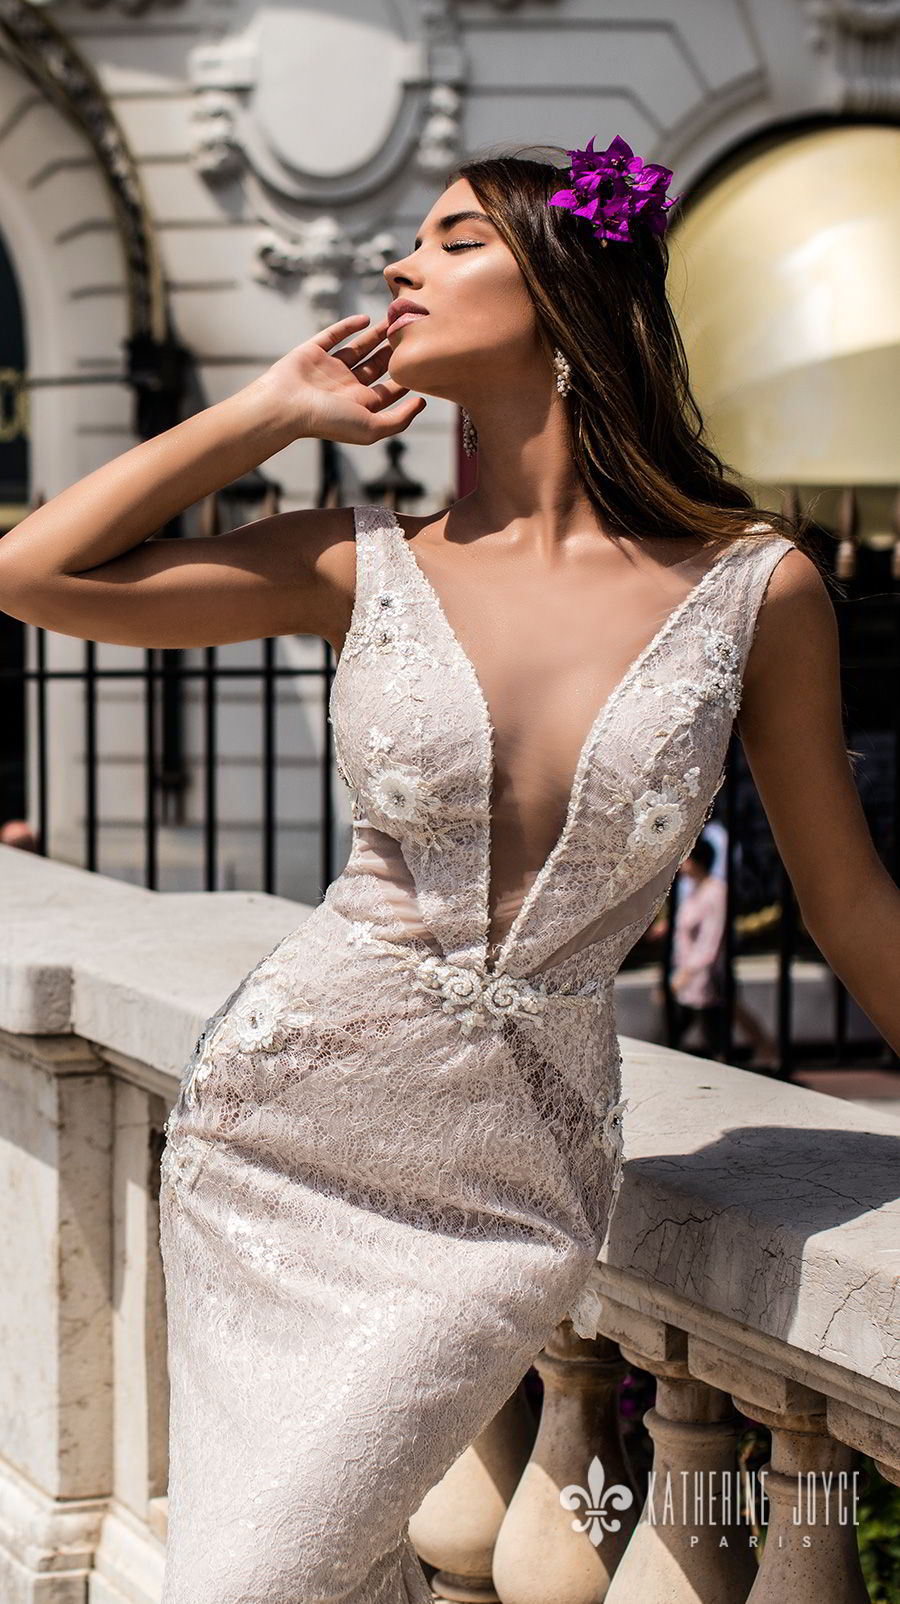 katherine joyce 2018 bridal sleeveless illusion bateau deep v neck full embellishment elegant sexy fit and flare wedding dress open back chapel train (alisiya) zv